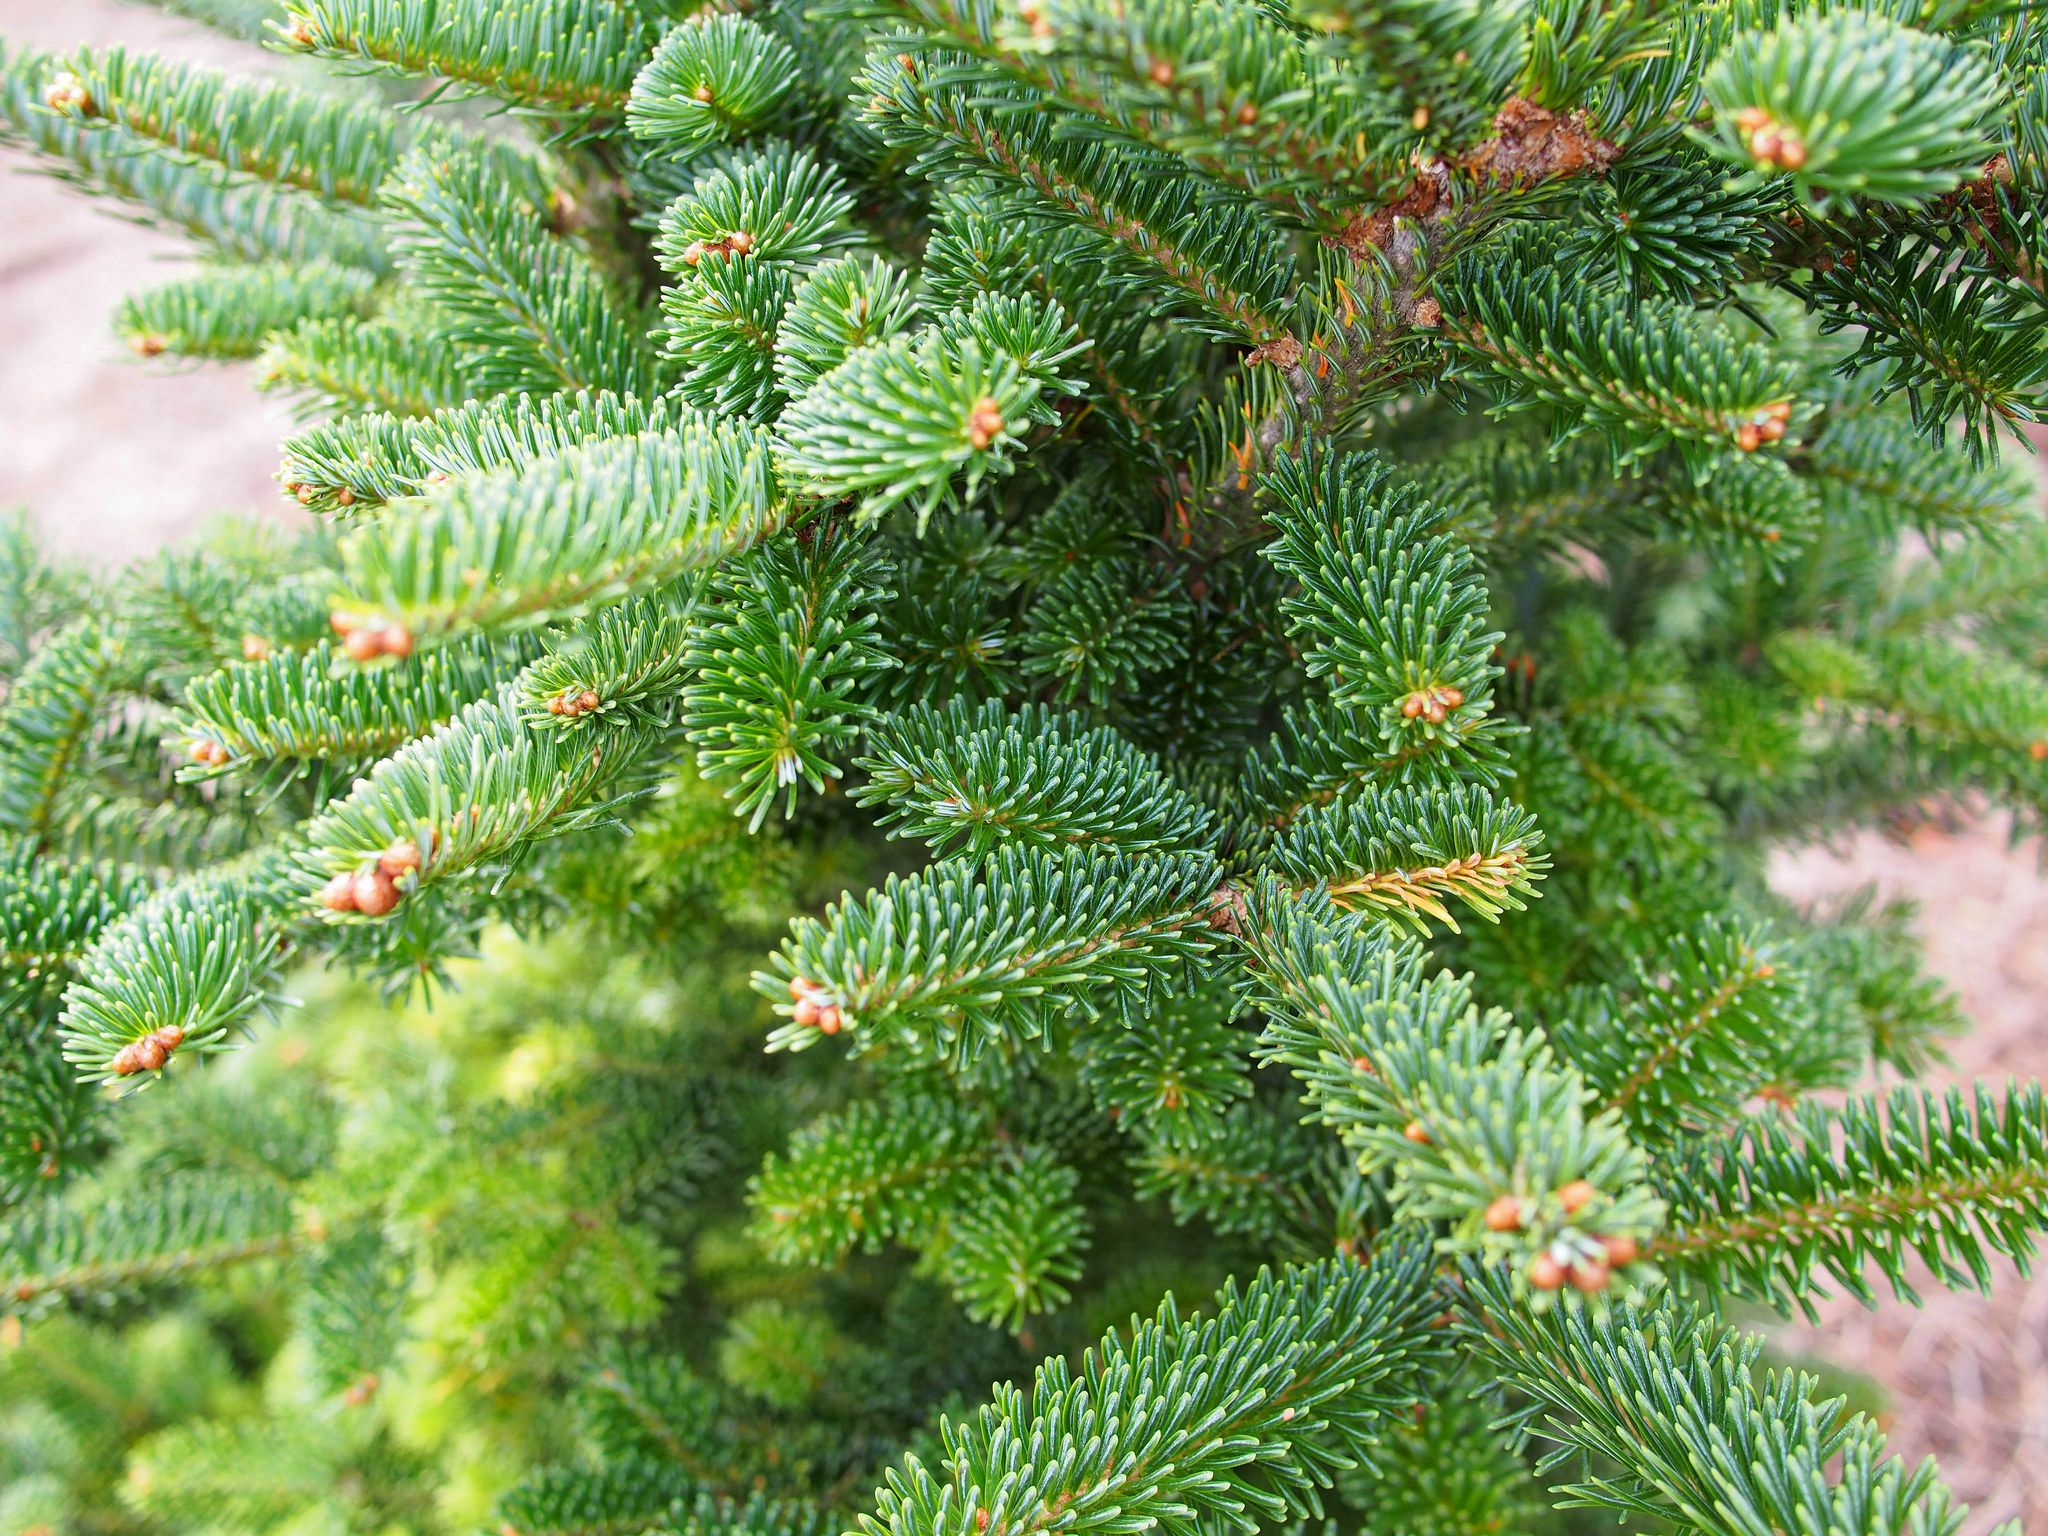 A close-up of a Fraser fir